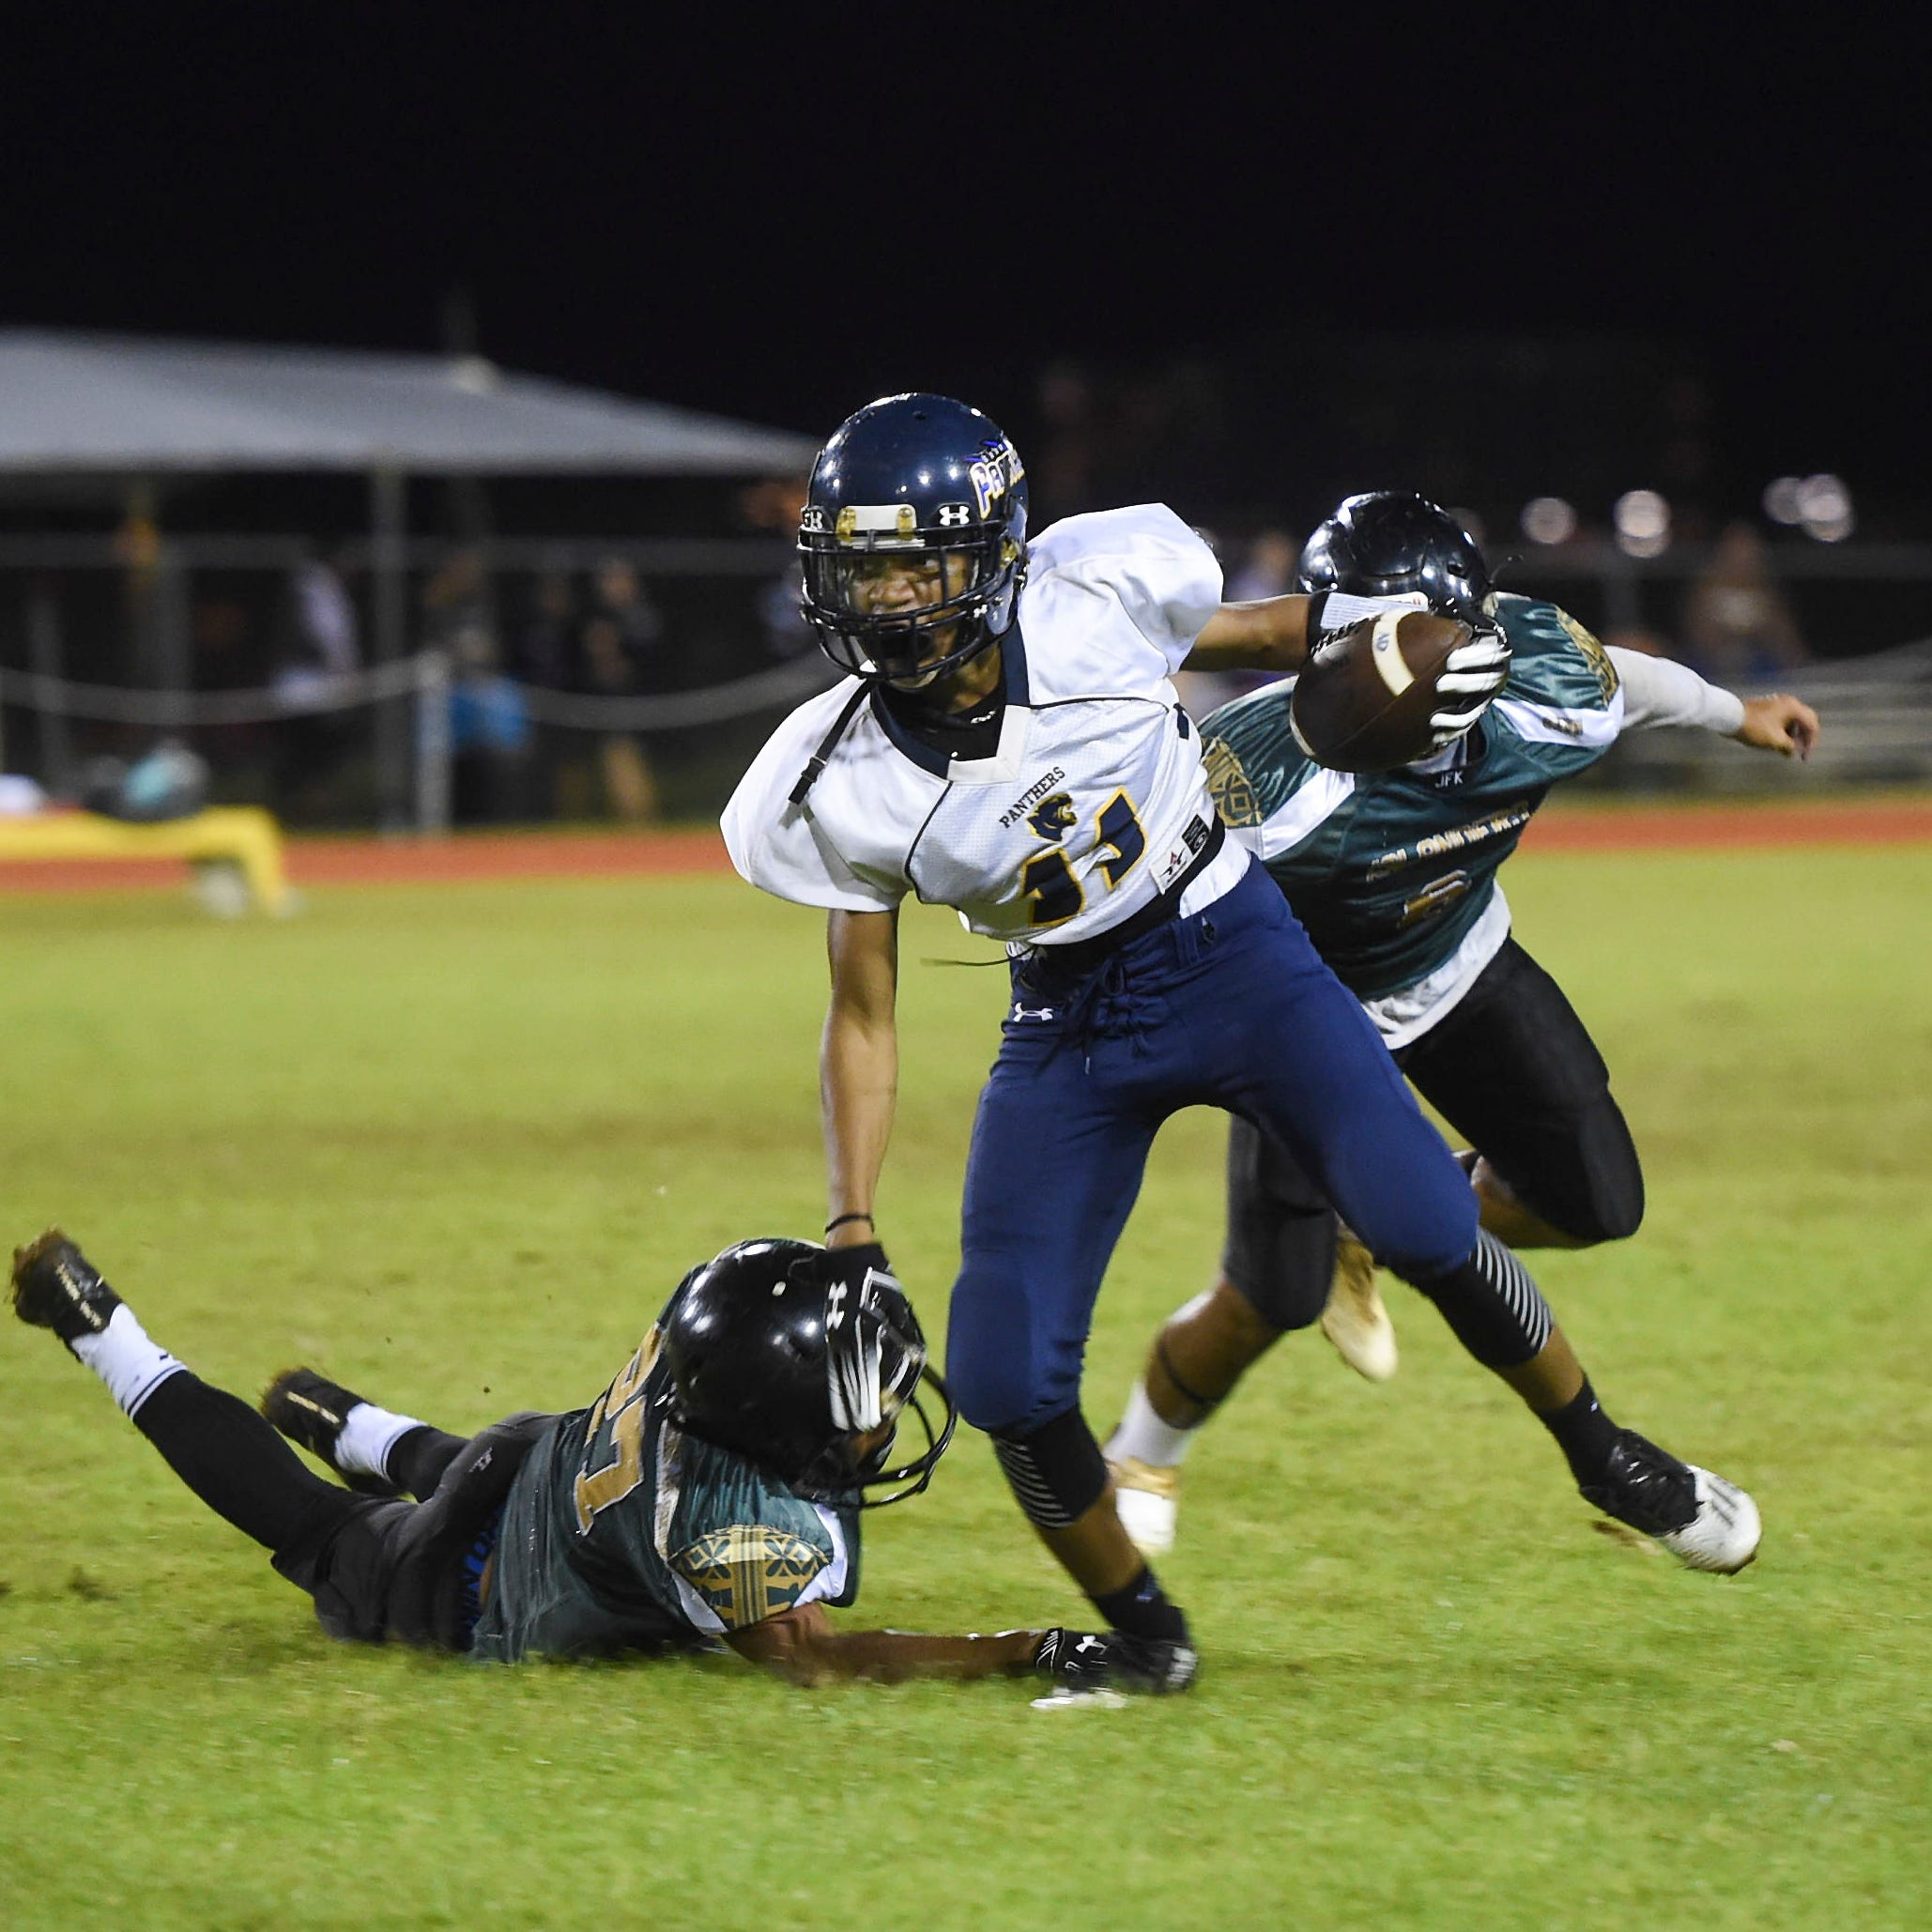 Guam High Panthers edge JFK Islanders in OT, 13-6